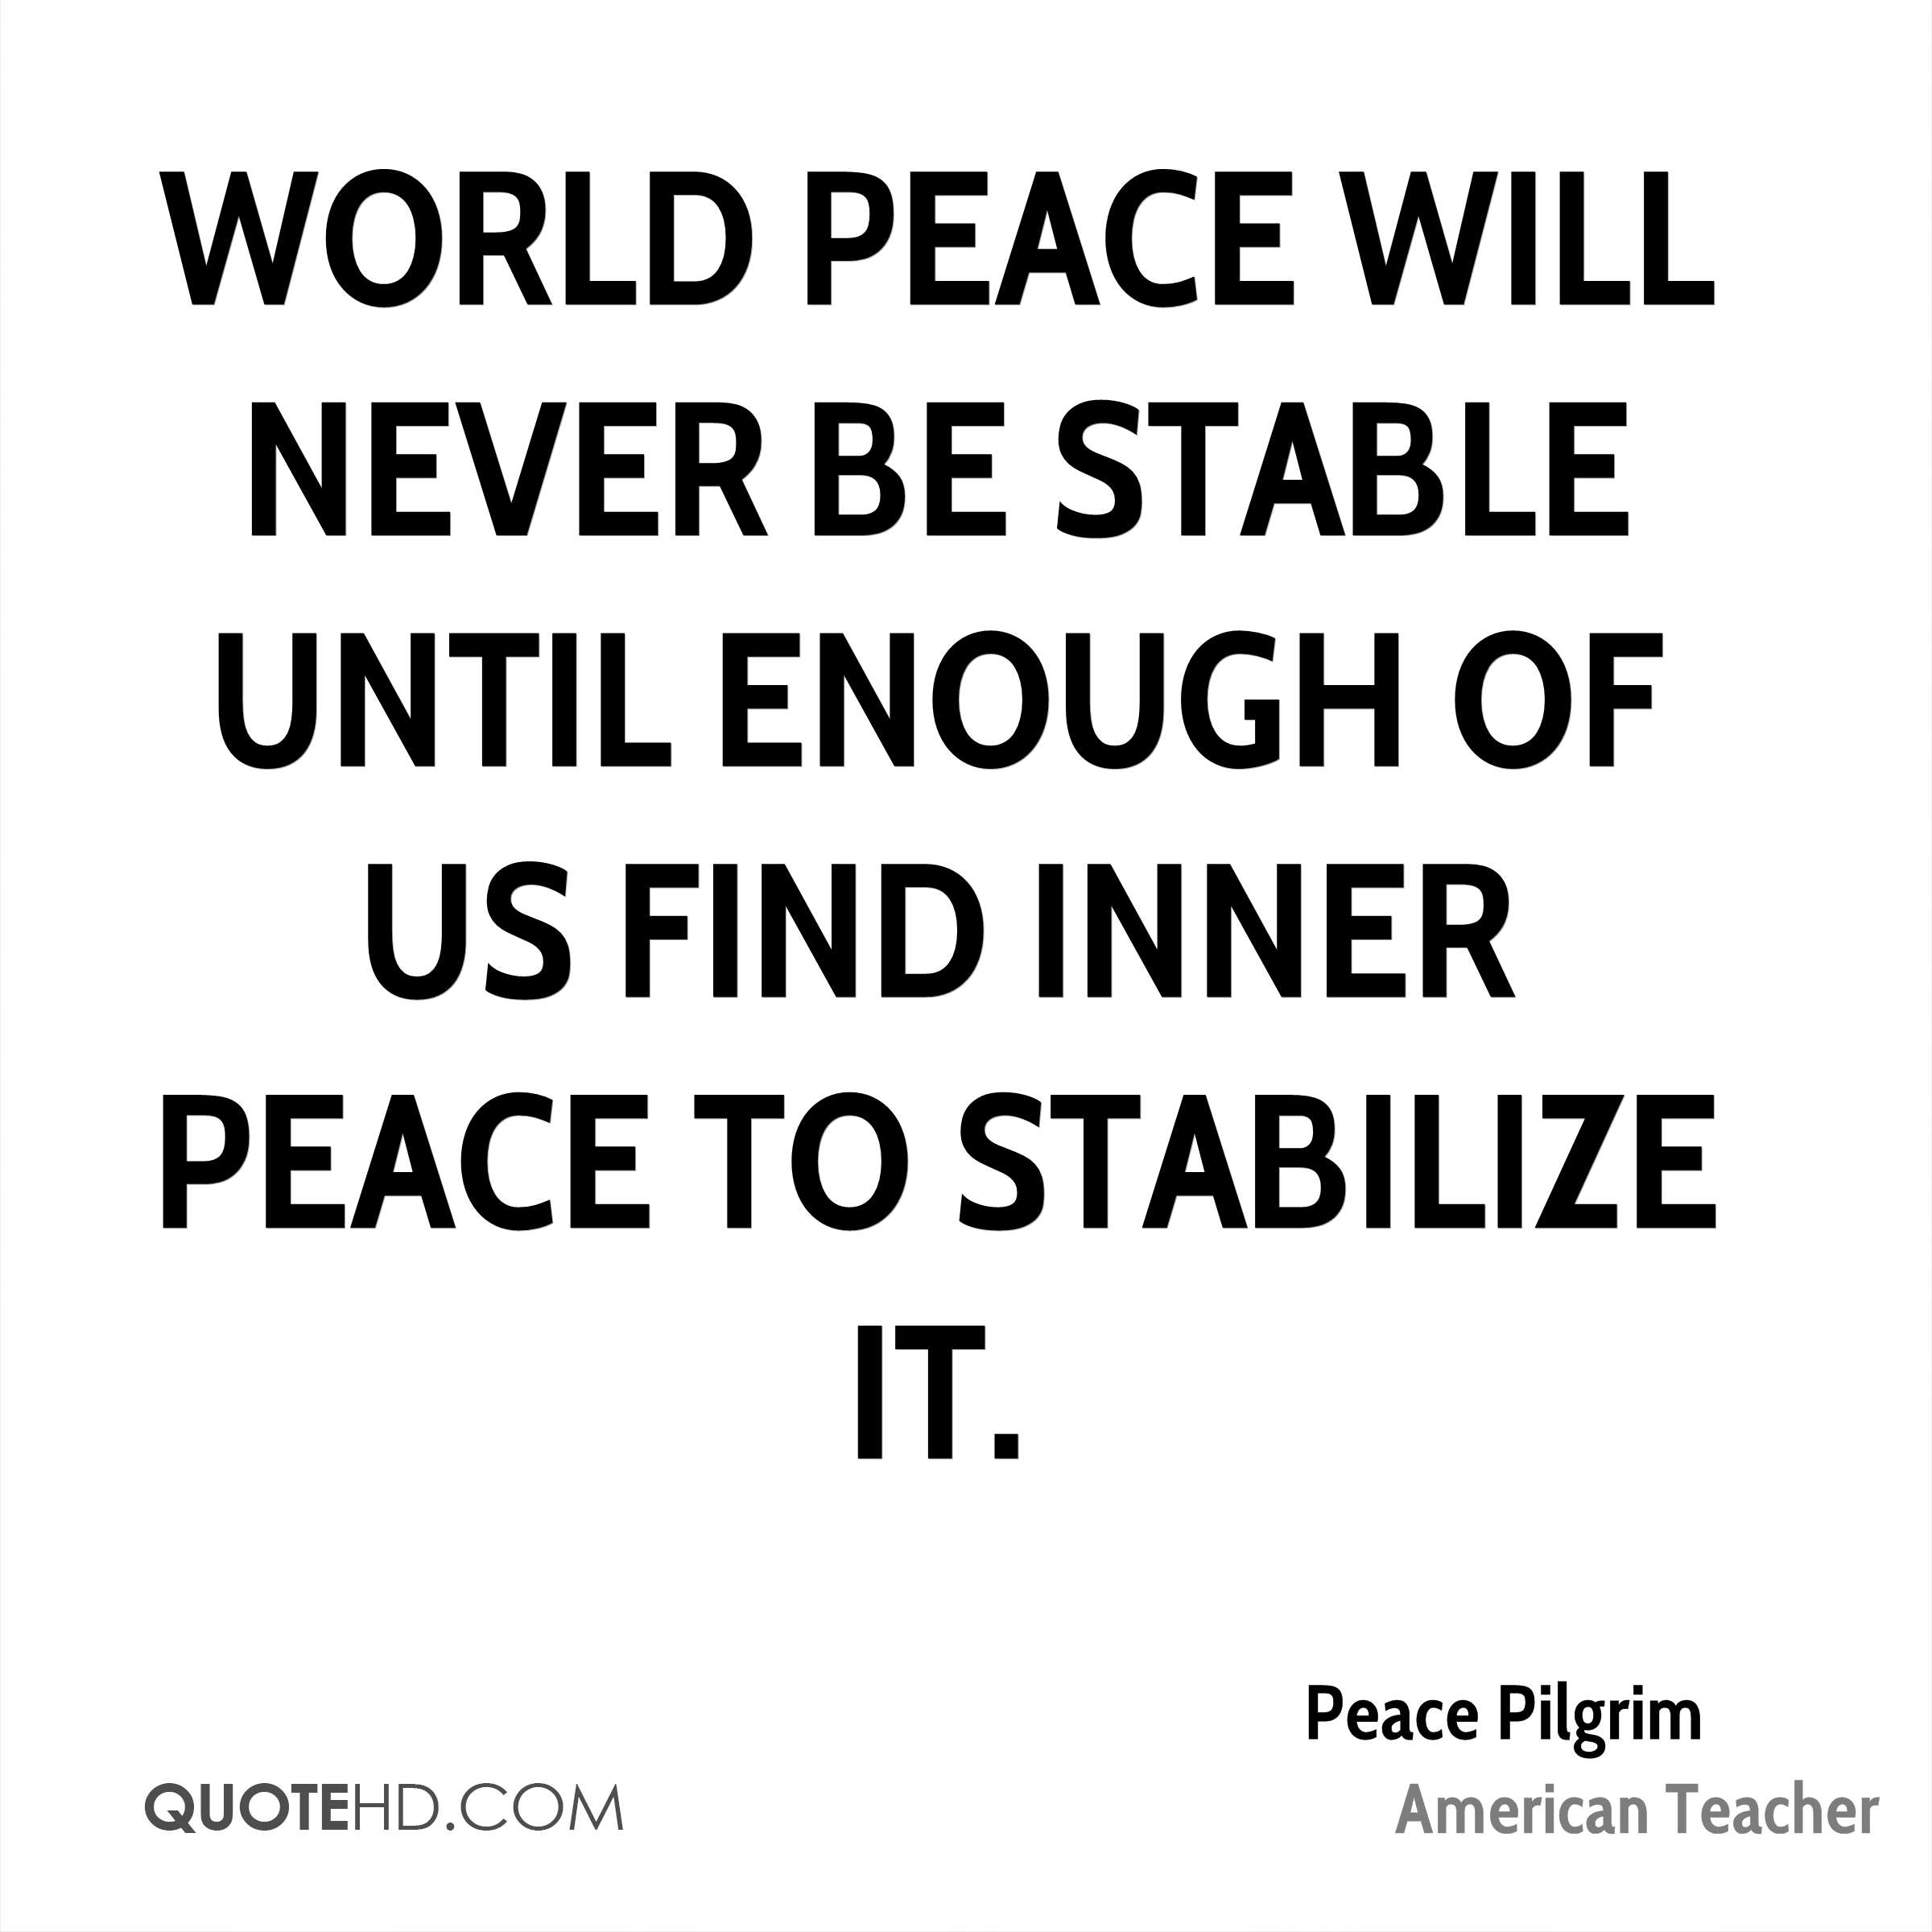 World peace will never be stable until enough of us find inner peace to stabilize it.